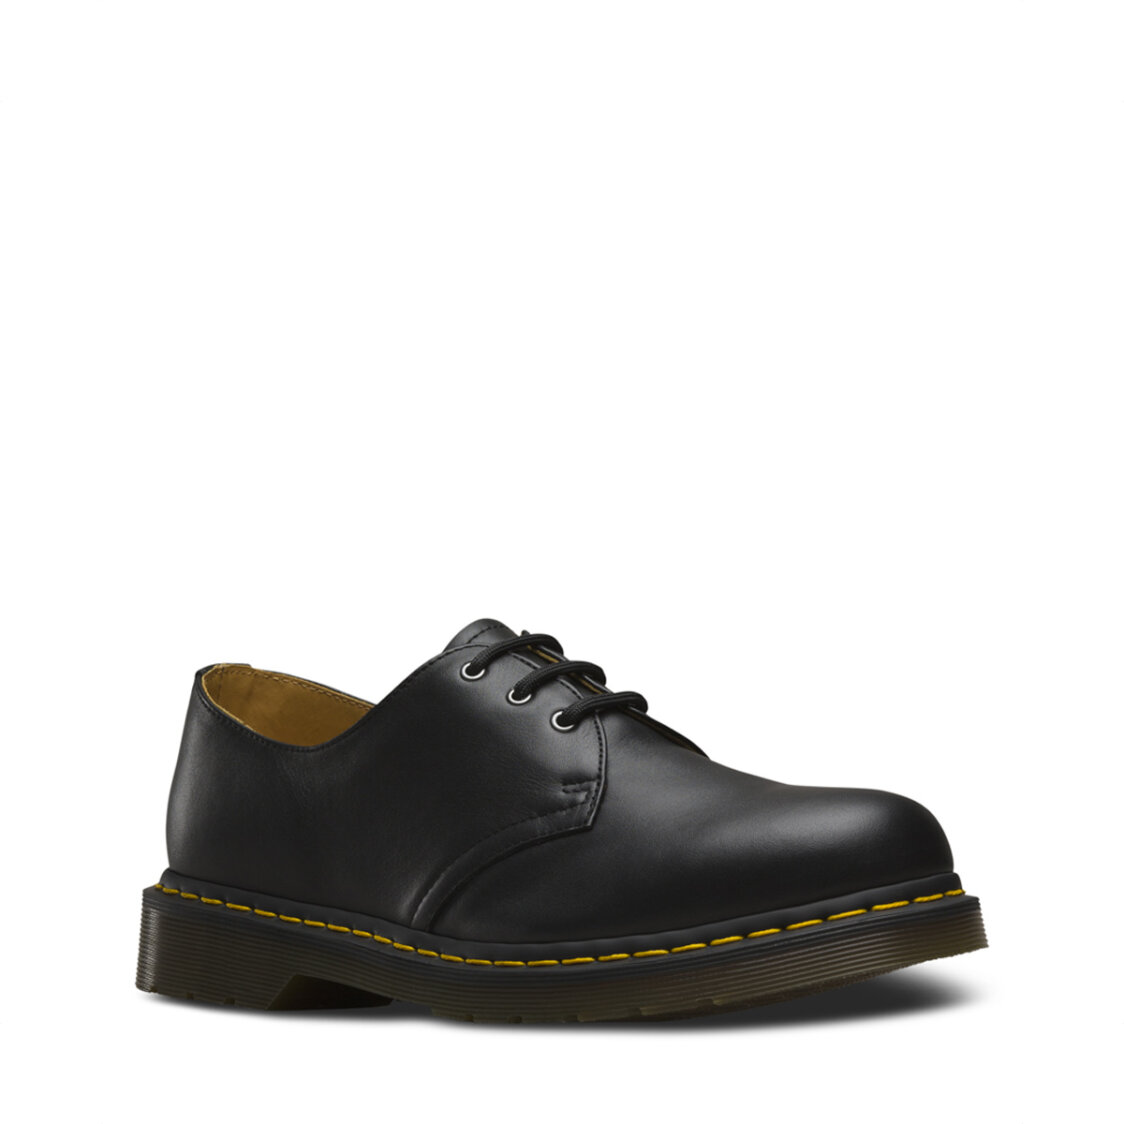 Dr Marten 1461 Nappa Leather Oxford Shoes